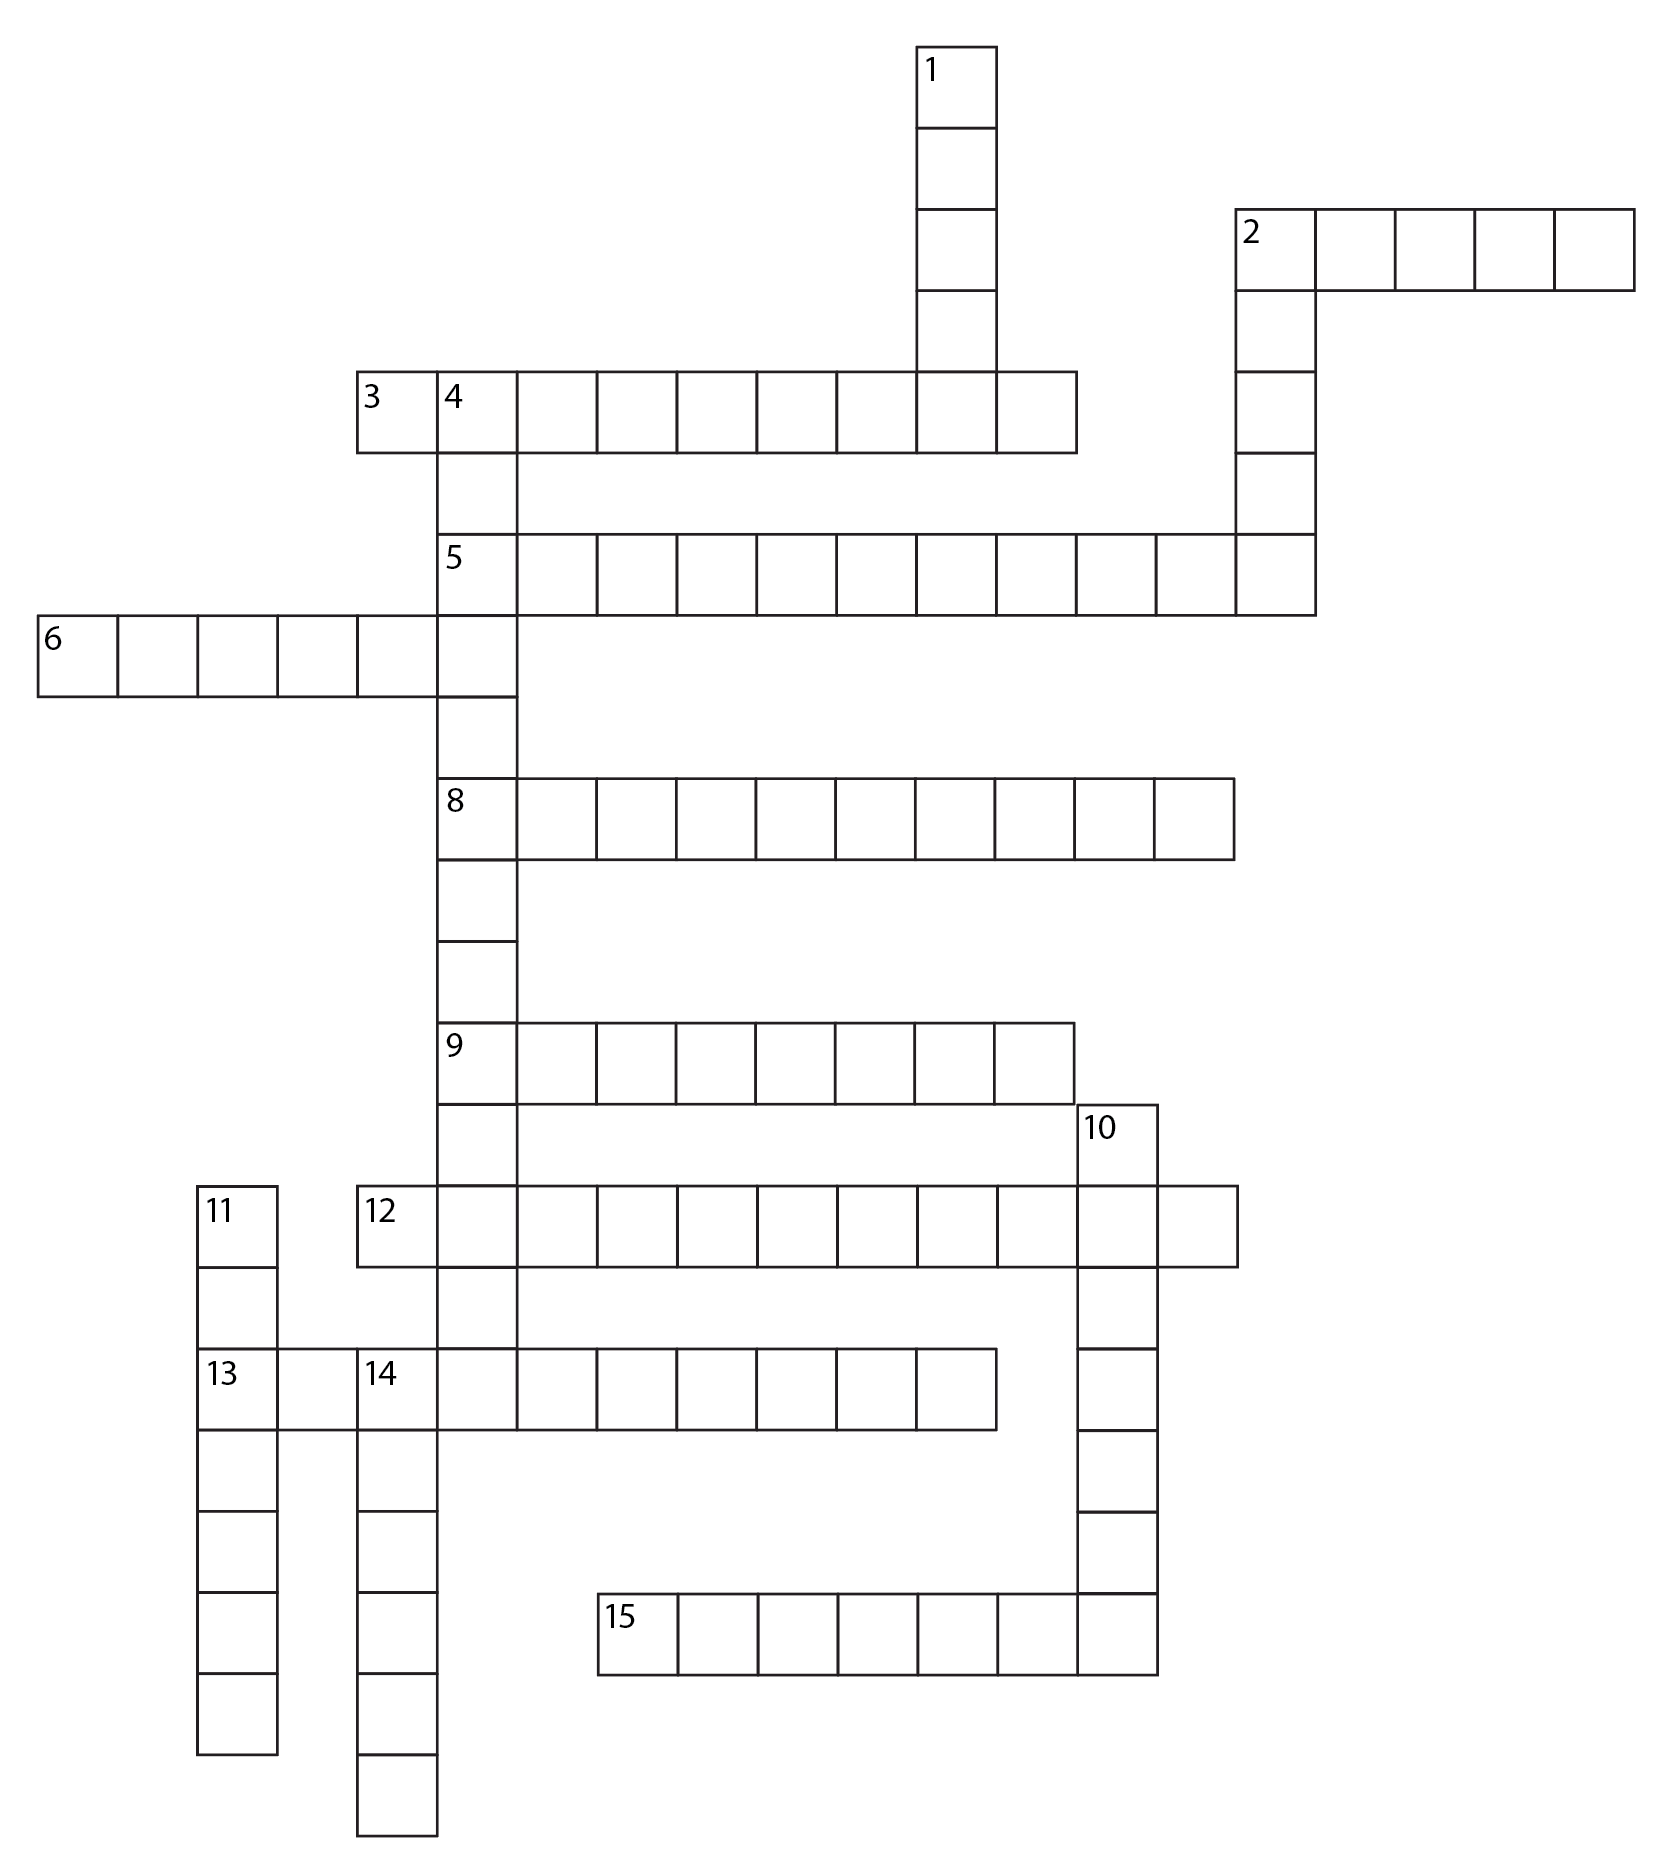 https://universityofhawaii.myuvn.com/wp-content/uploads/sites/42/2019/01/Crossword.png